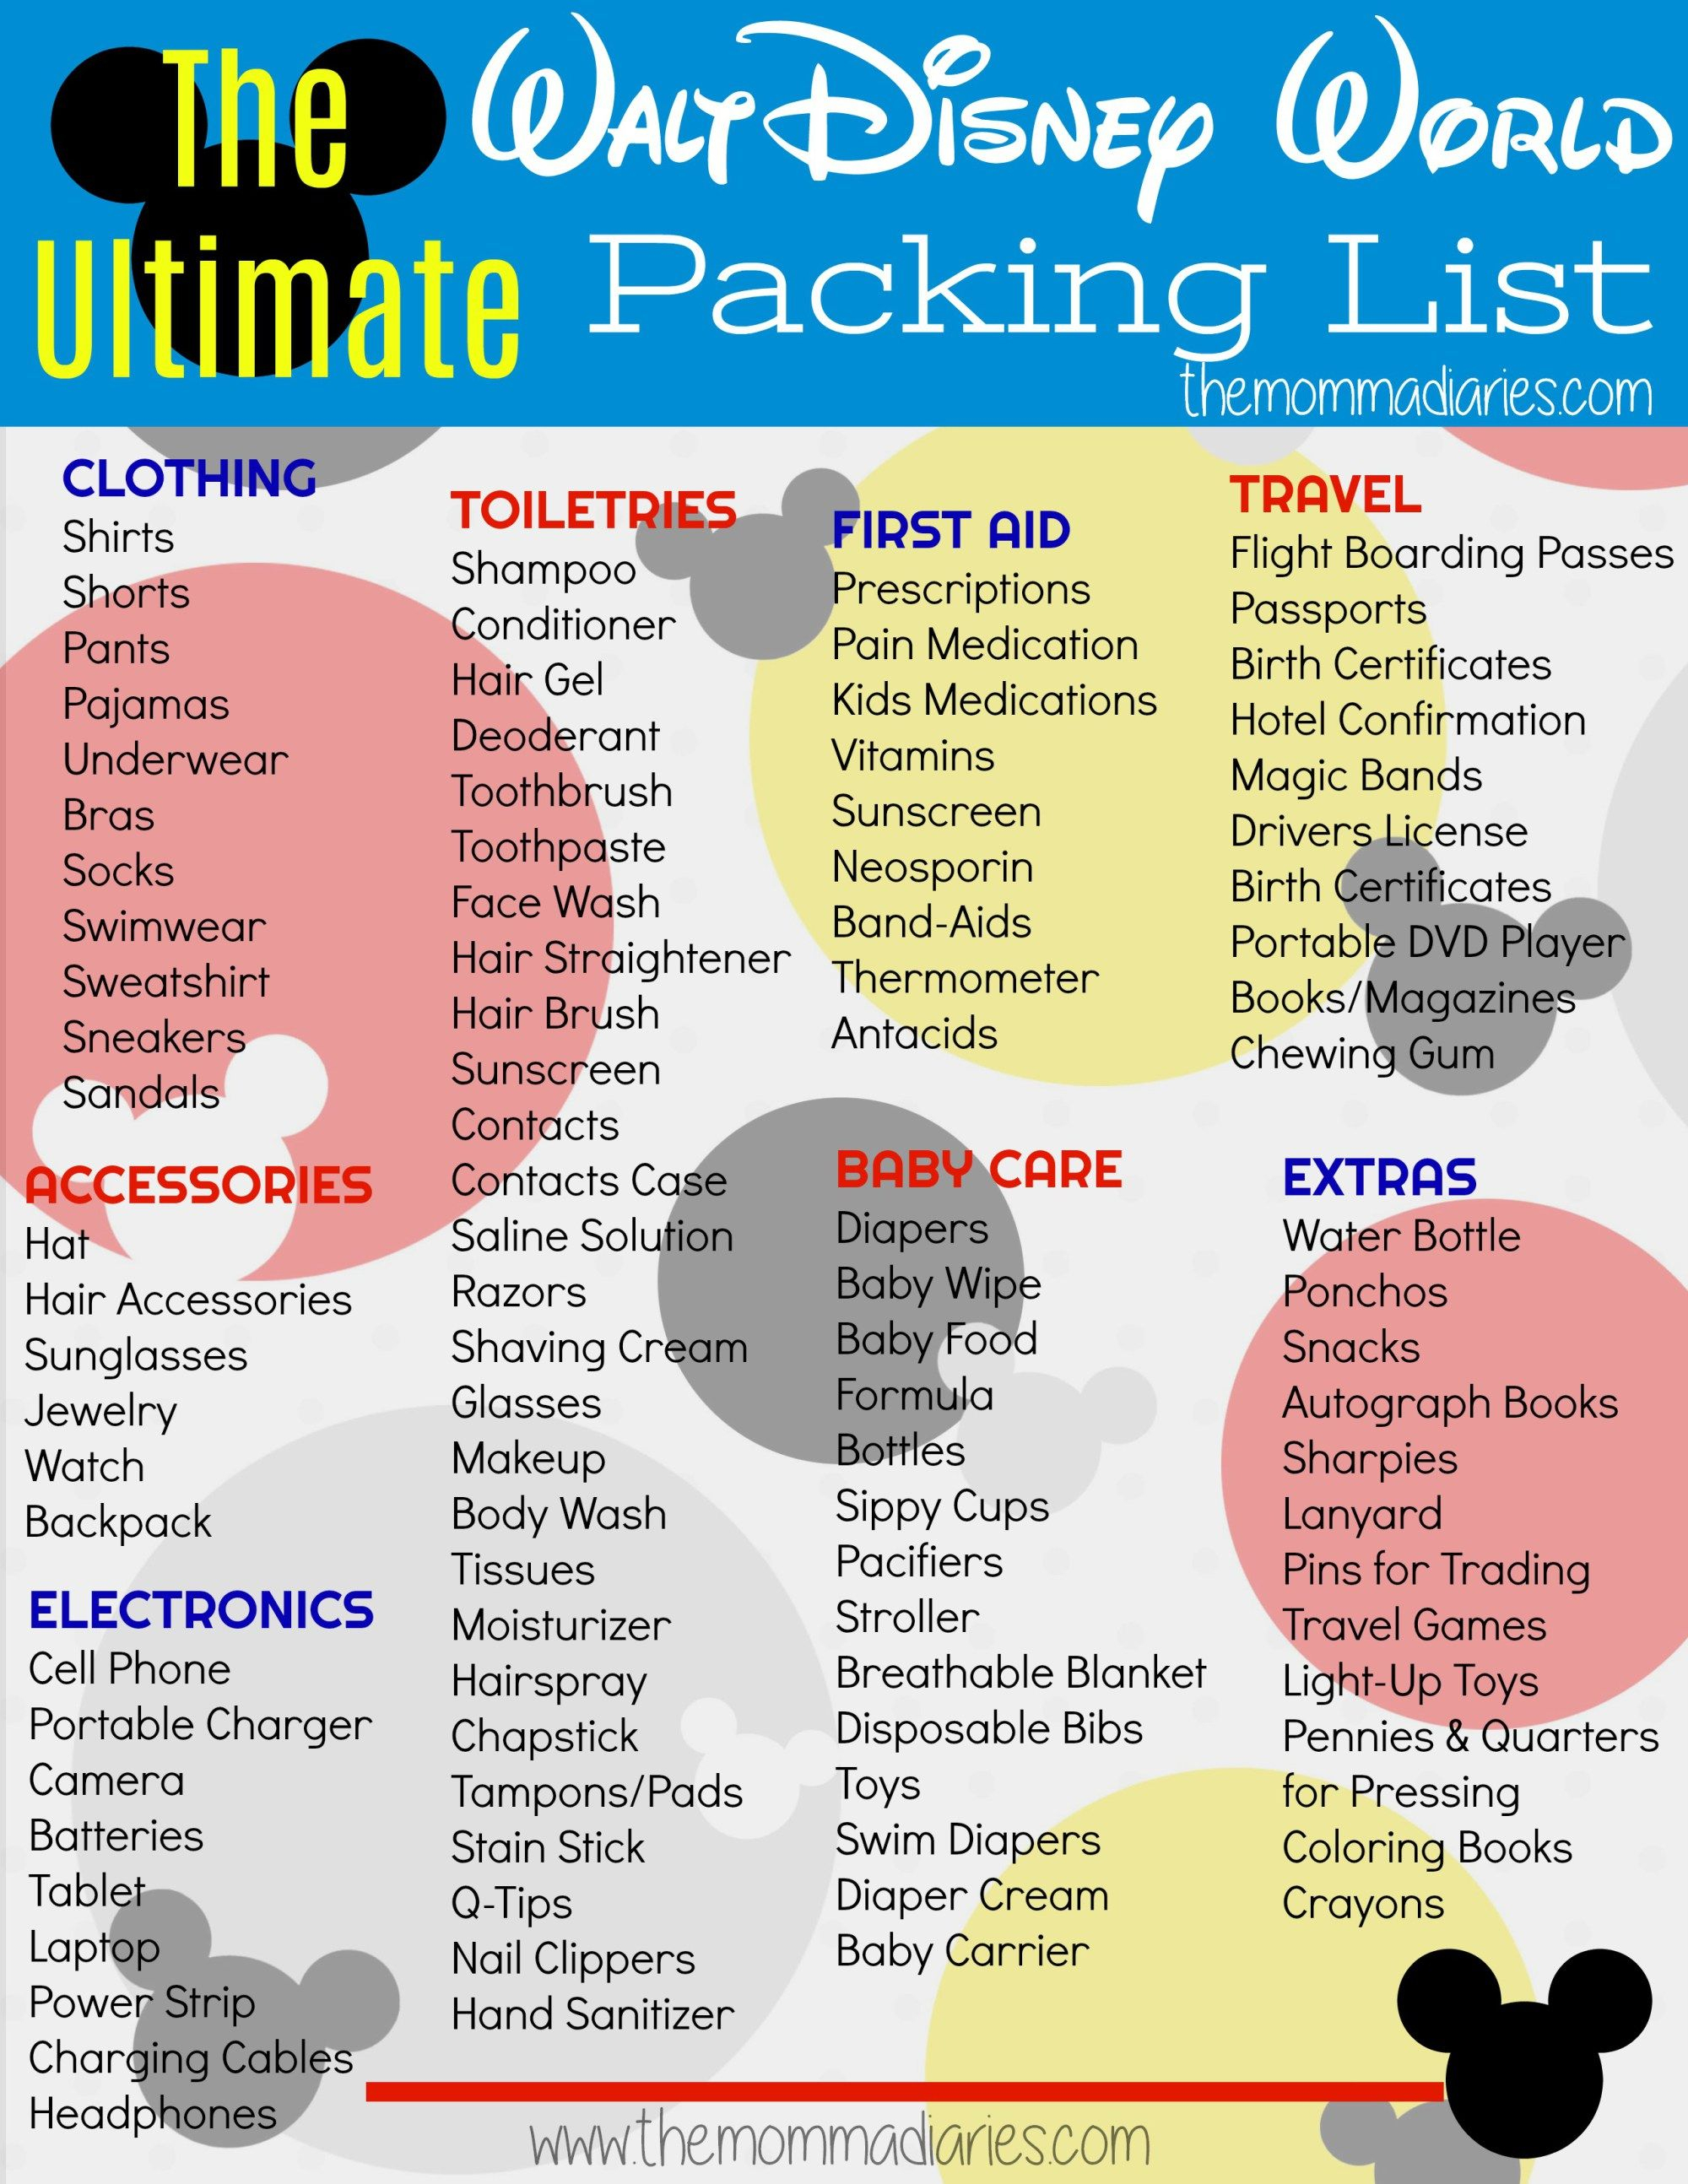 The Ultimate Disney Packing List + Free Printable | Disney regarding Printable List Of Rides At Disney World 2020 Checklist